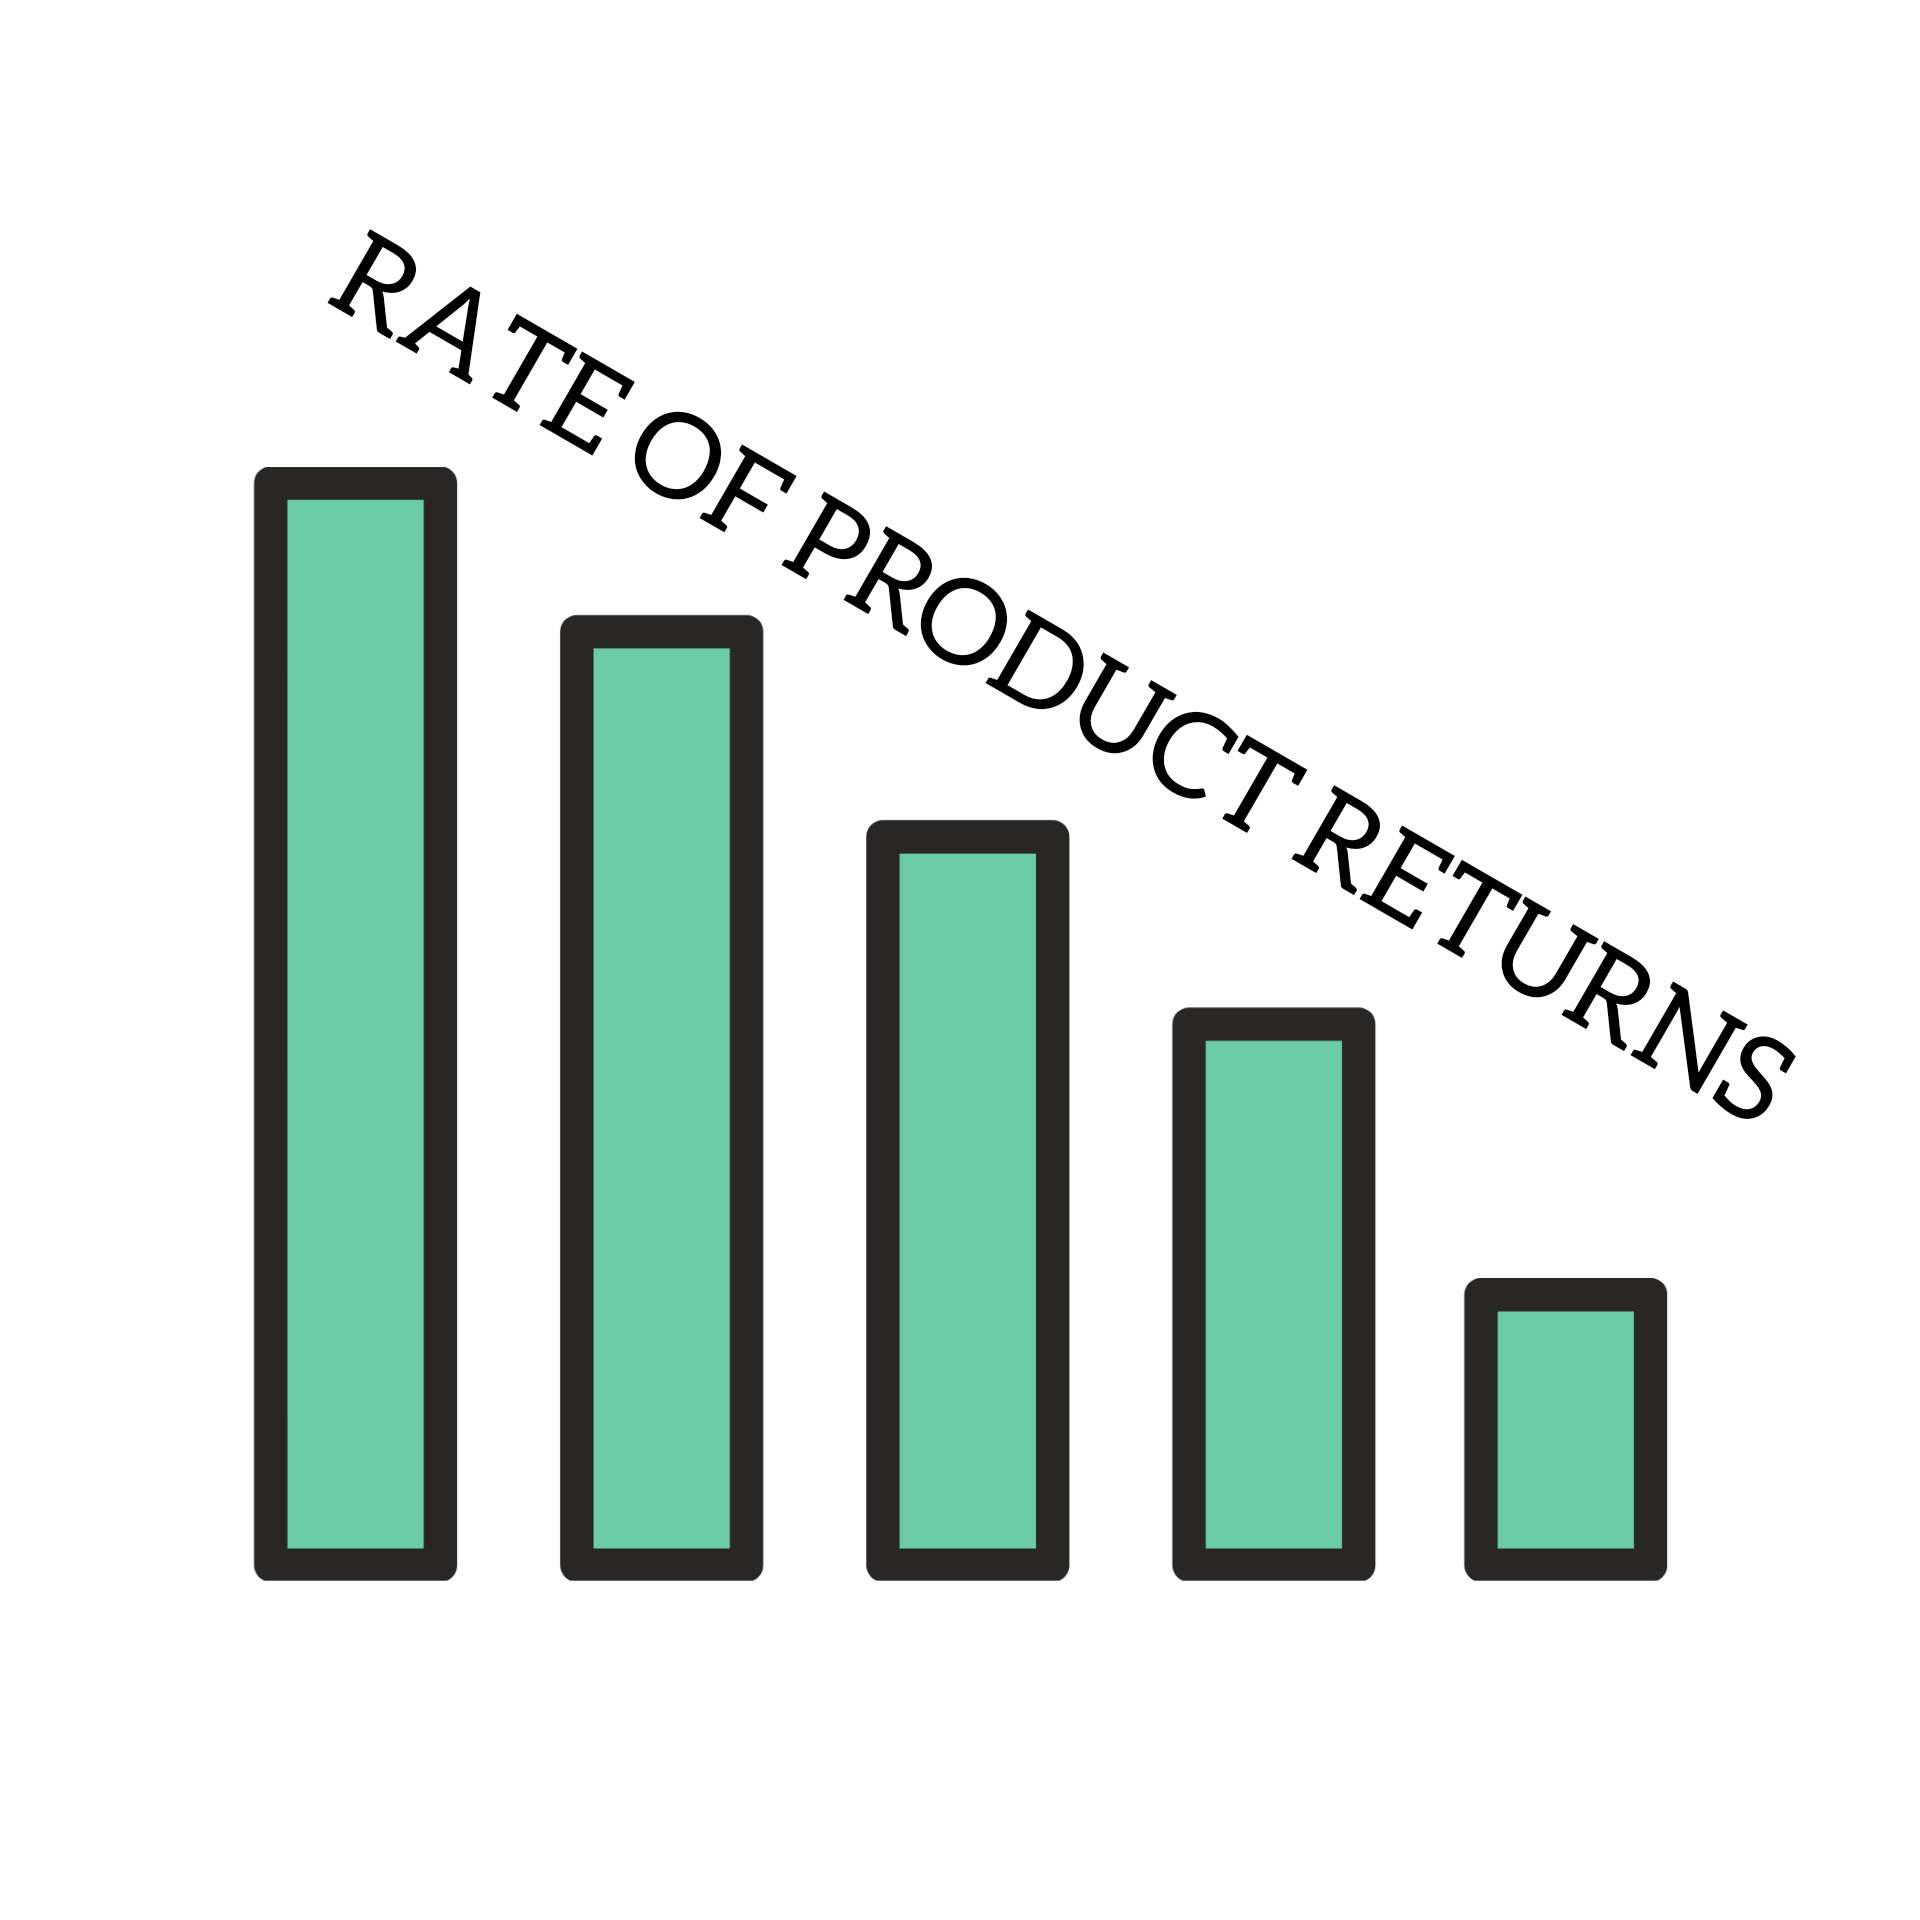 Product customization reduces the rate of product return